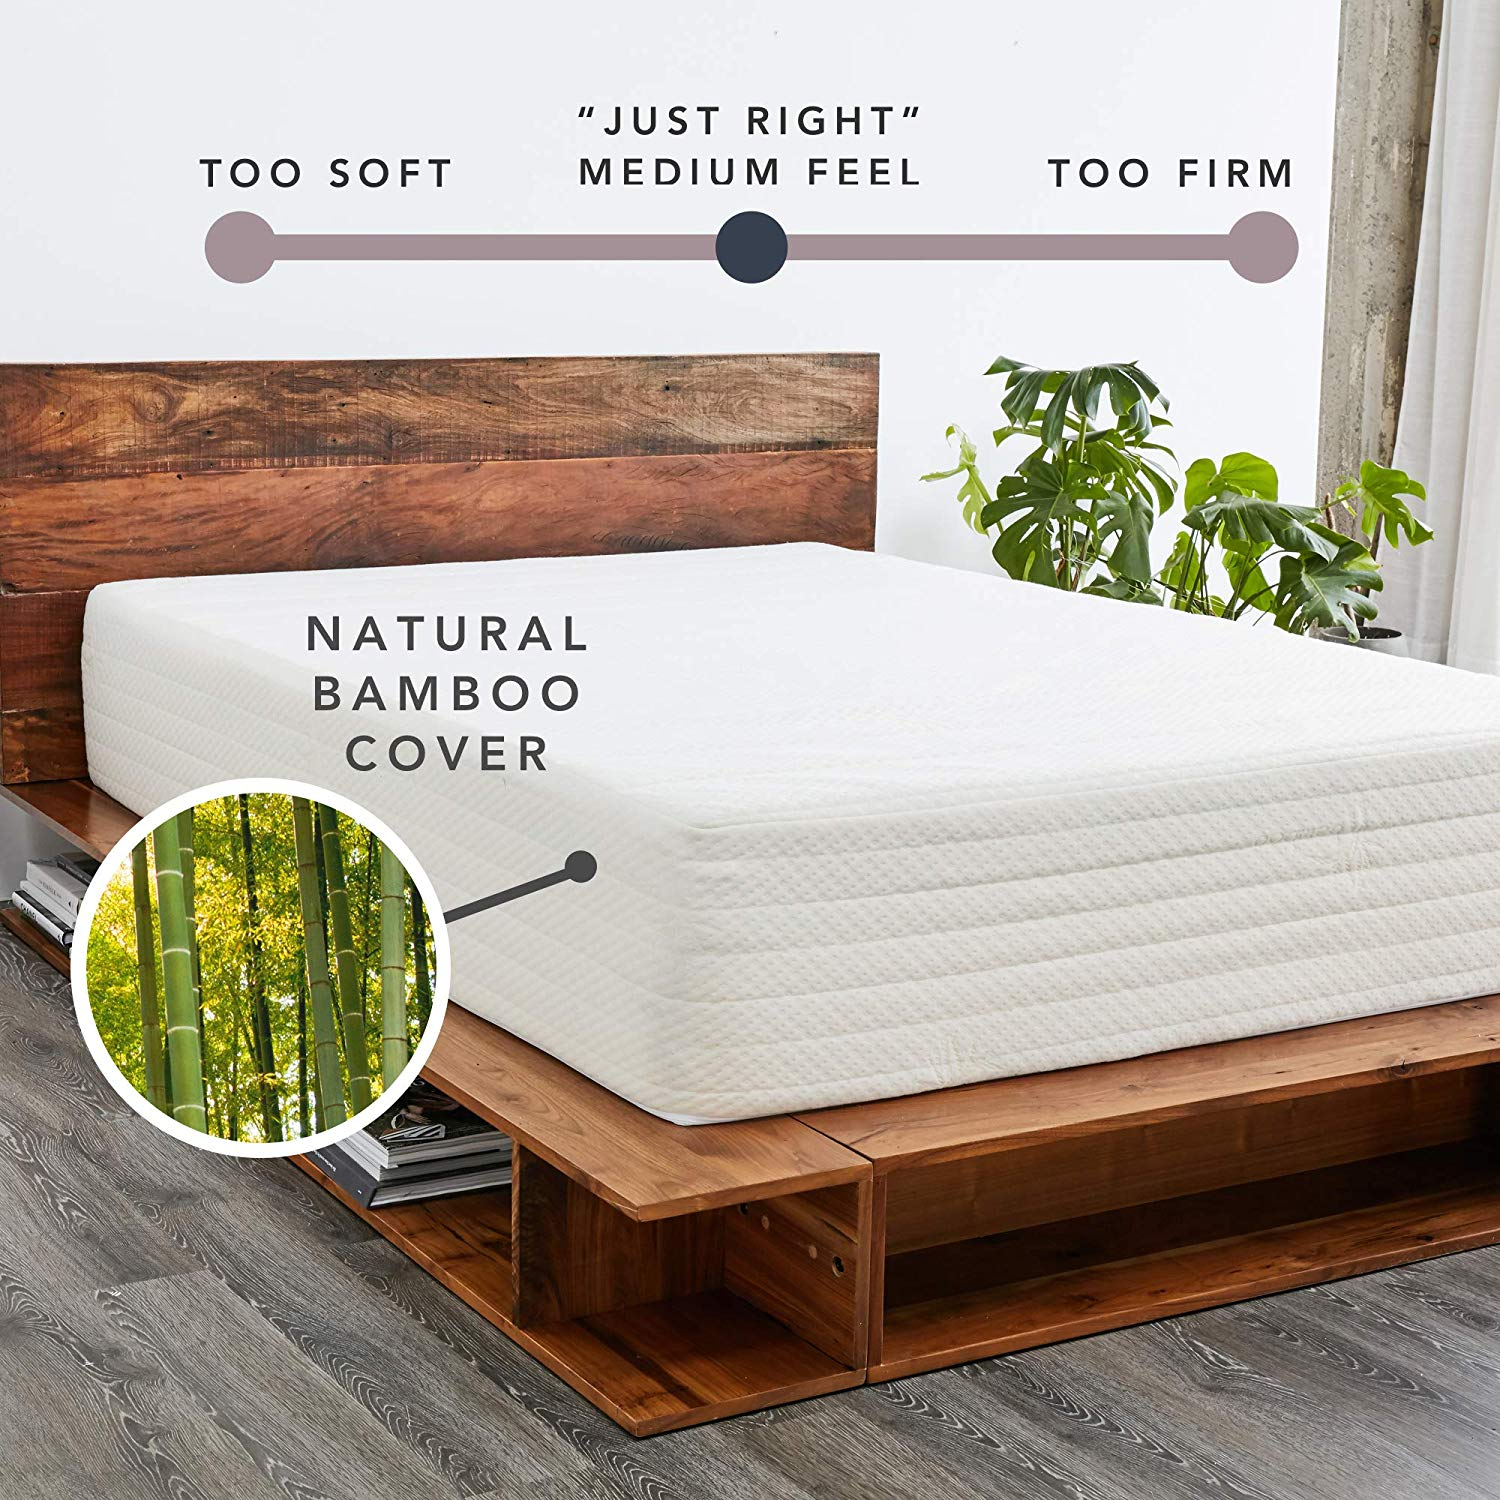 Natural Wool Sleep Surface and Bamboo Cover